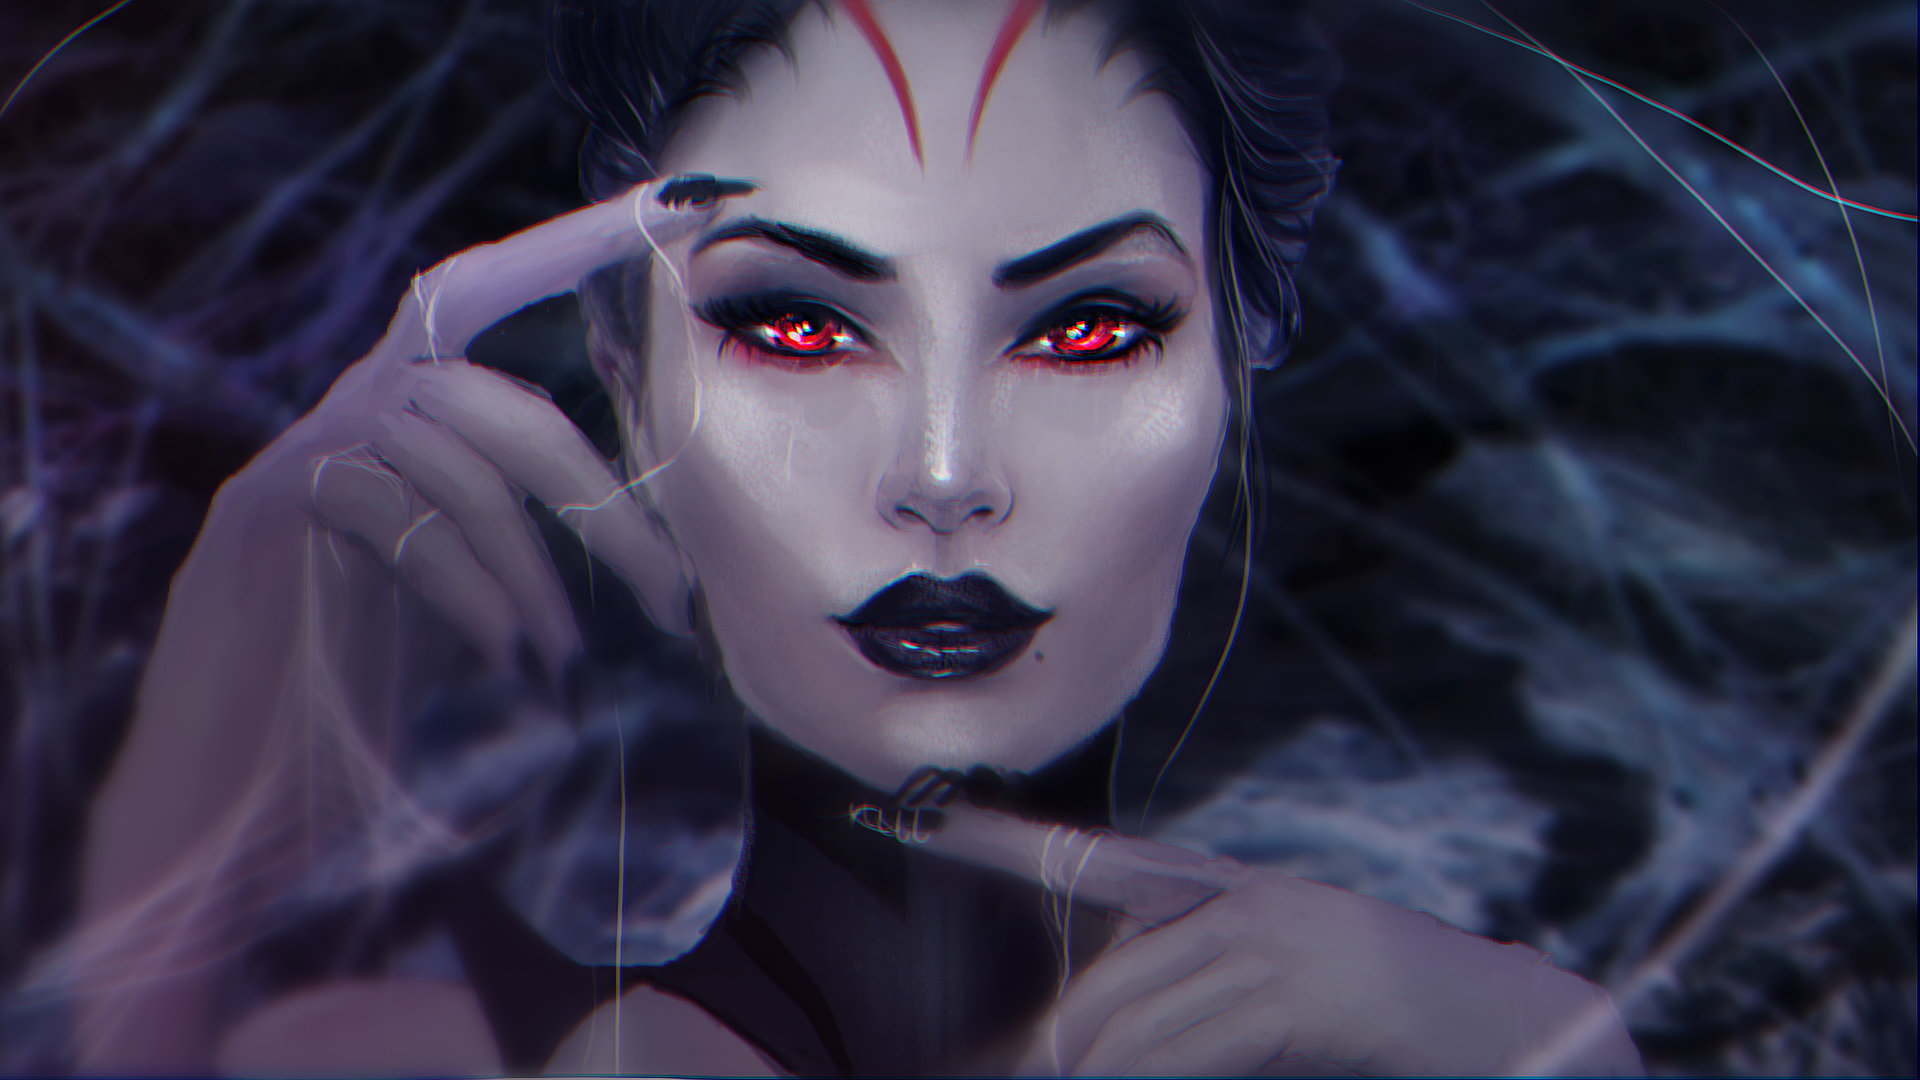 Goth Girl Wallpaper 1440x2960 Elise The Spider Queen Hd Wallpaper Background Image